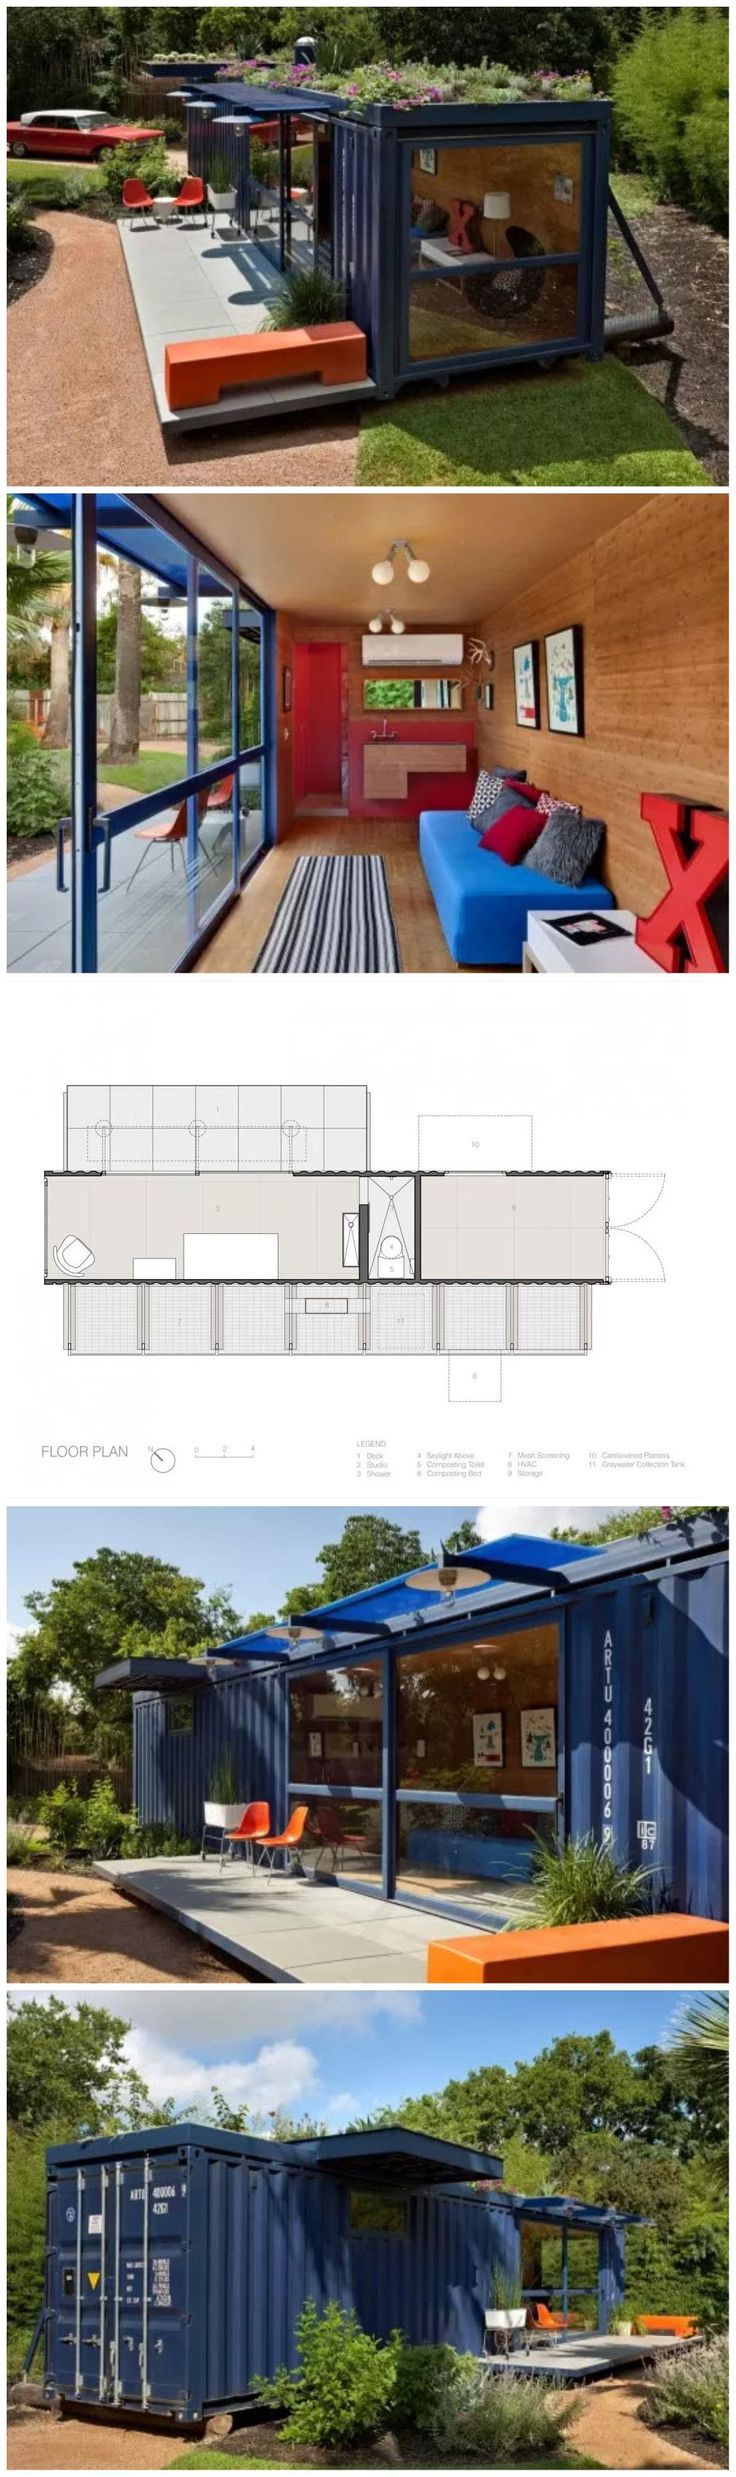 Container House. Add solar panels and plants on roof